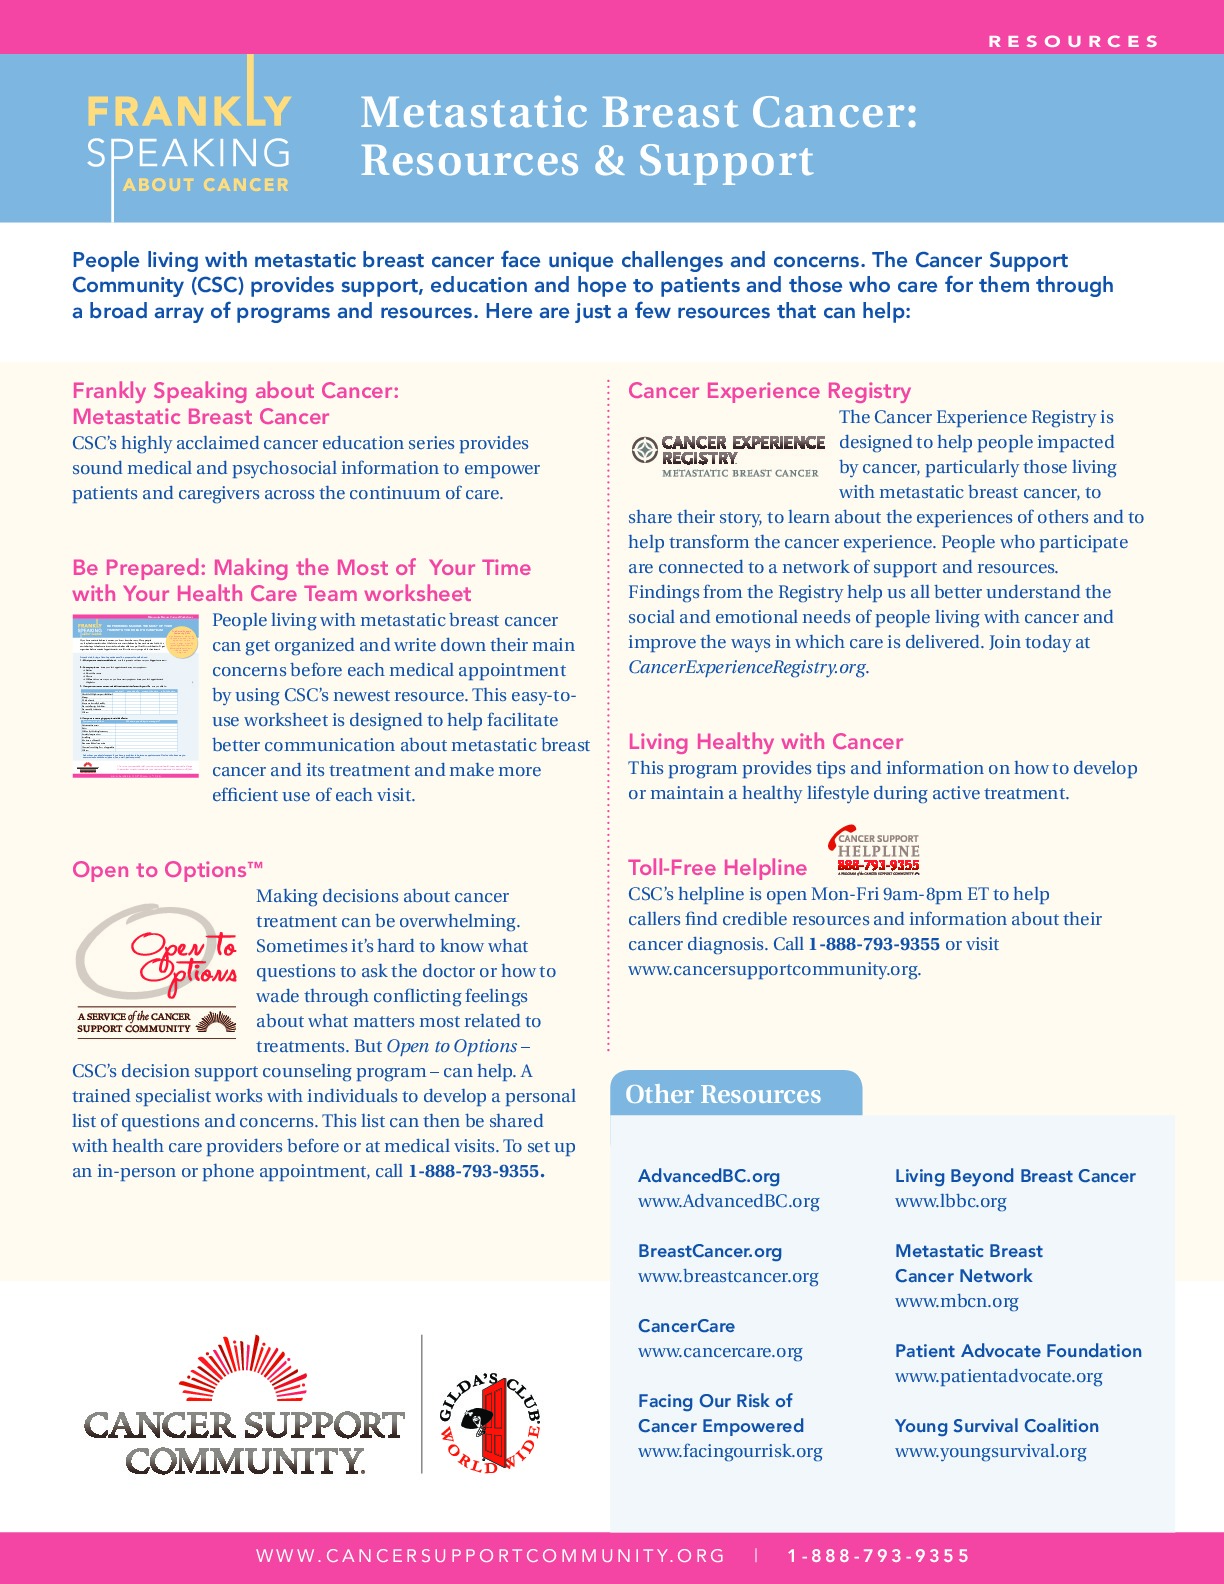 Frankly Speaking About Cancer: Metastatic Breast Cancer Resources and Support